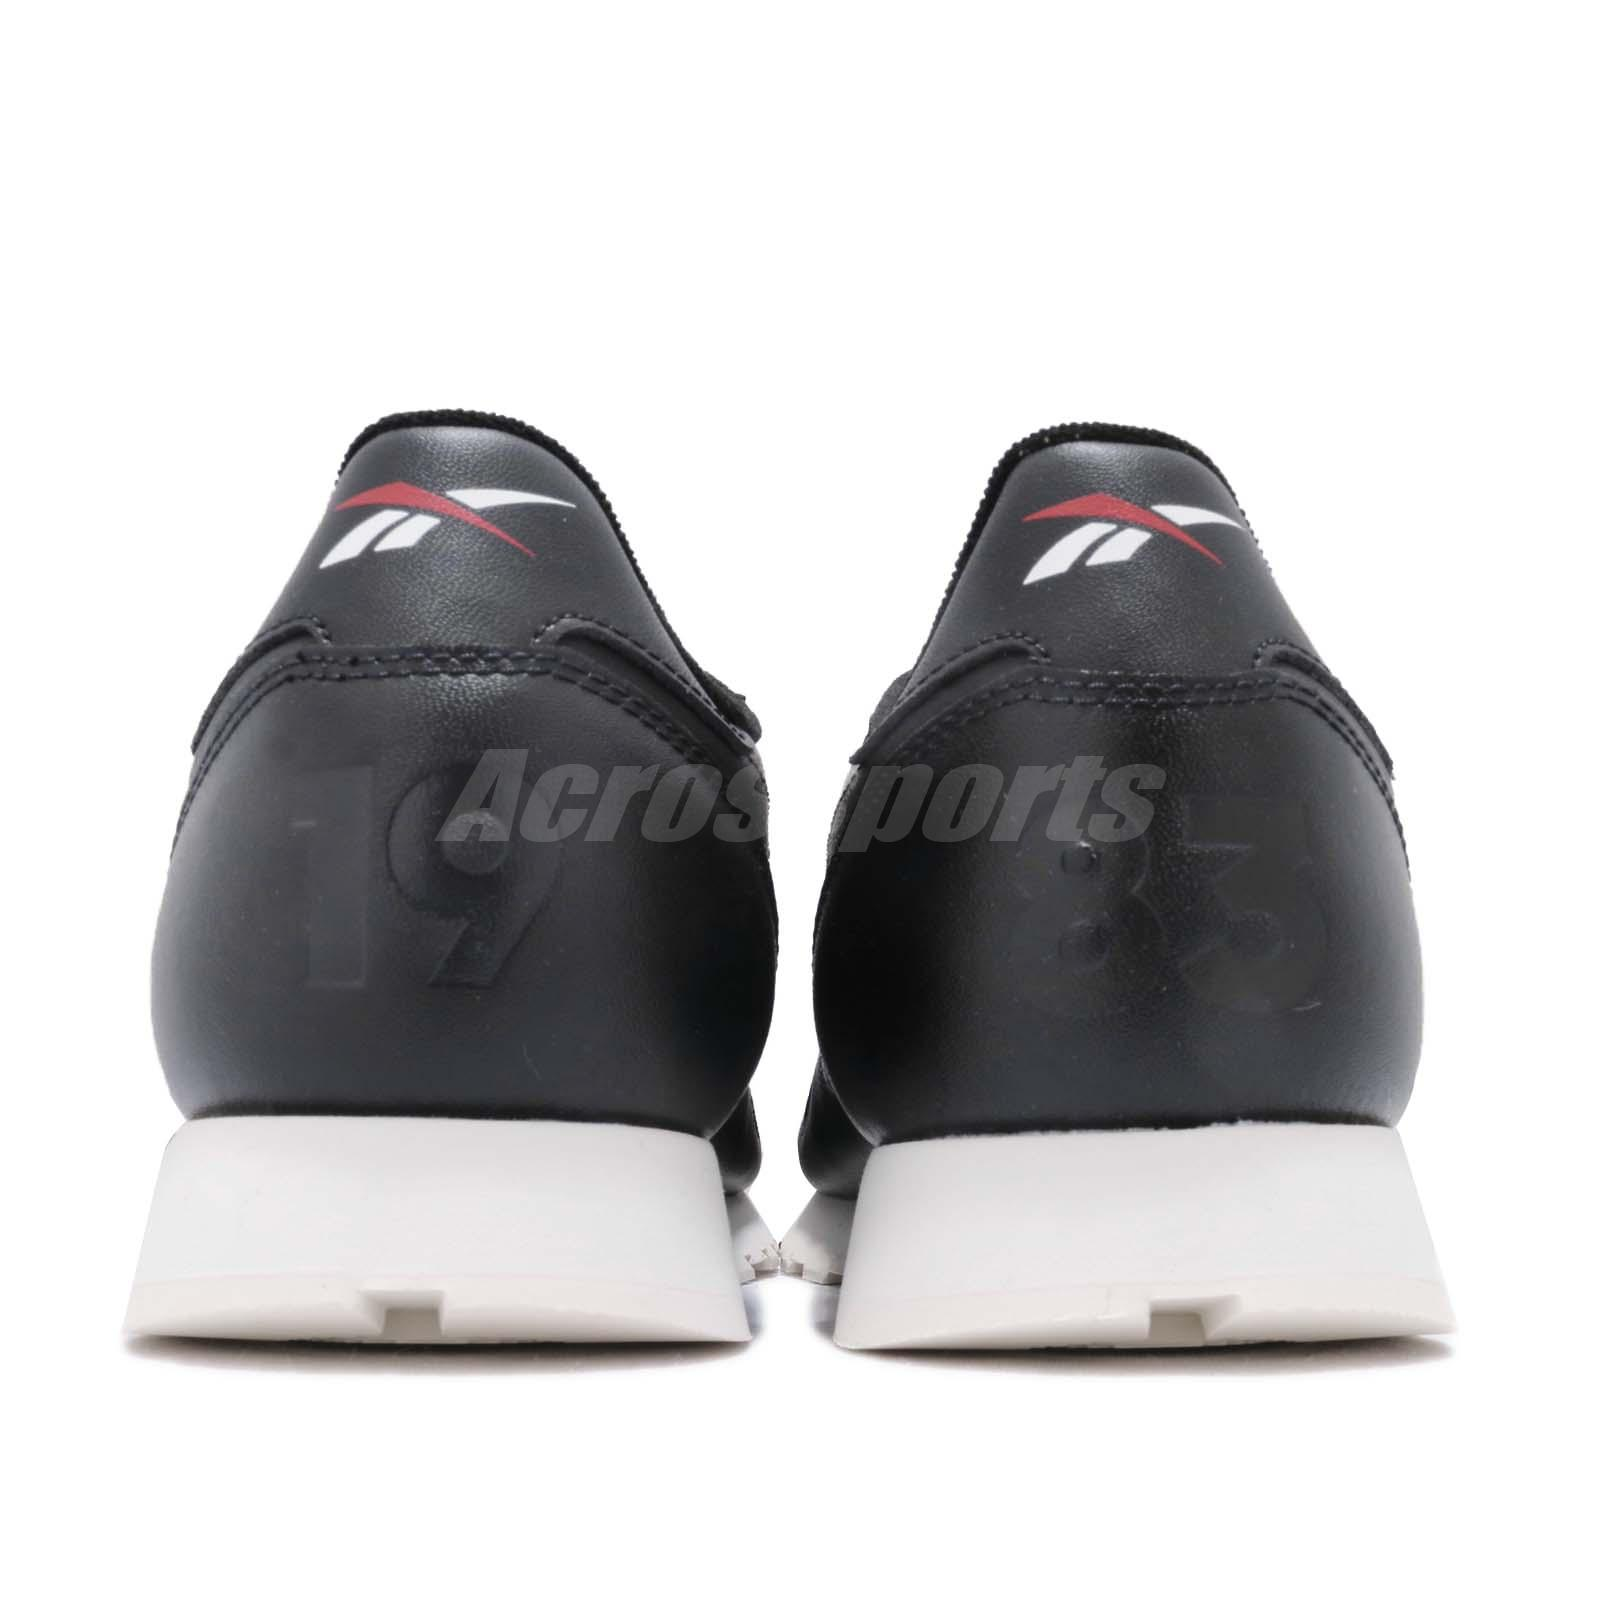 040cb3c9f4d67 Reebok Classic Leather Altered MU Black White Red Men Shoes Sneakers ...